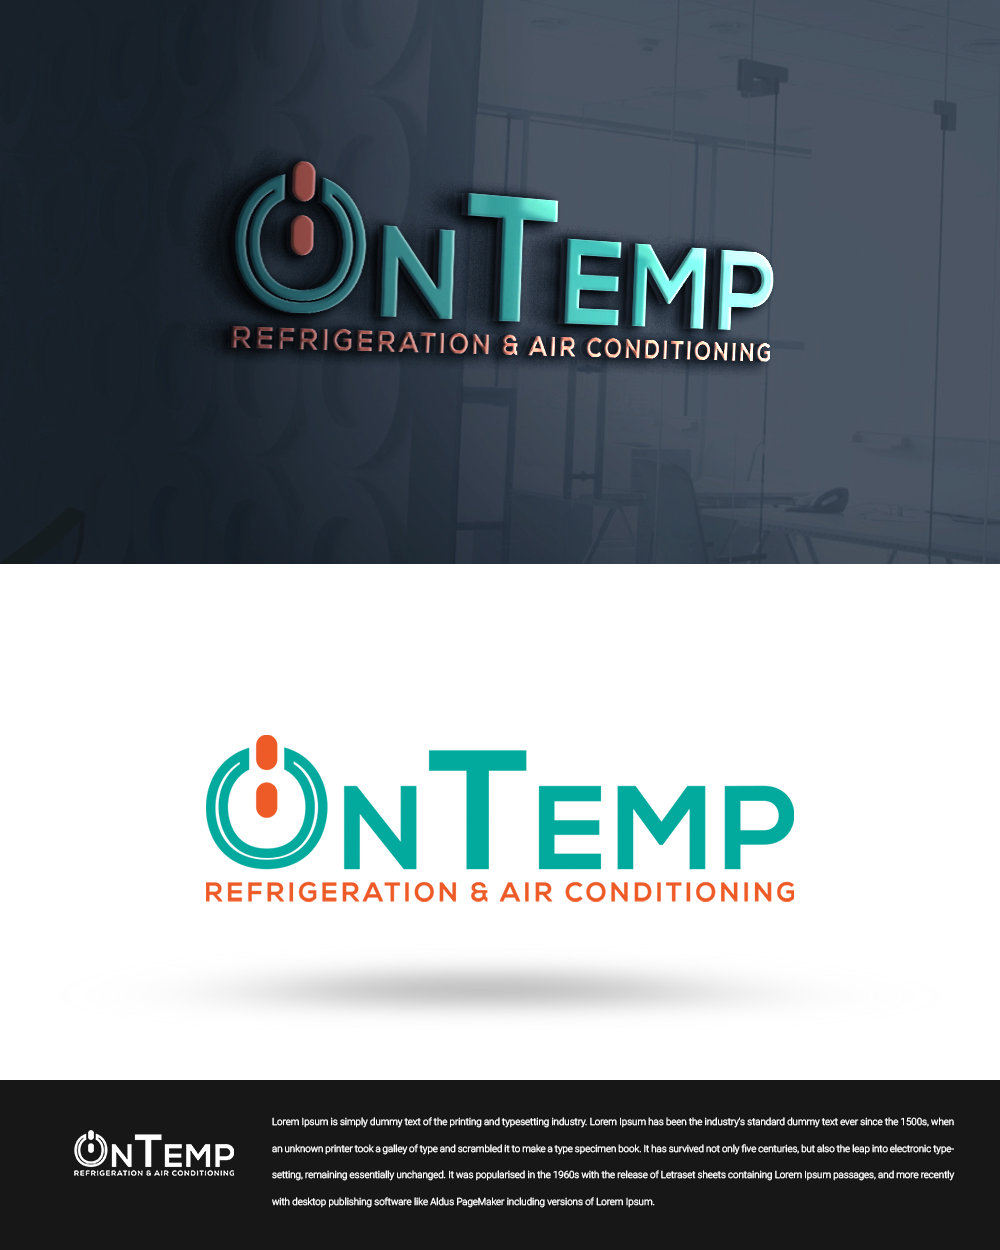 Masculine Bold Logo Design For Ontemp Refrigeration Amp Air Conditioning By Beetro 2 Design 22915262